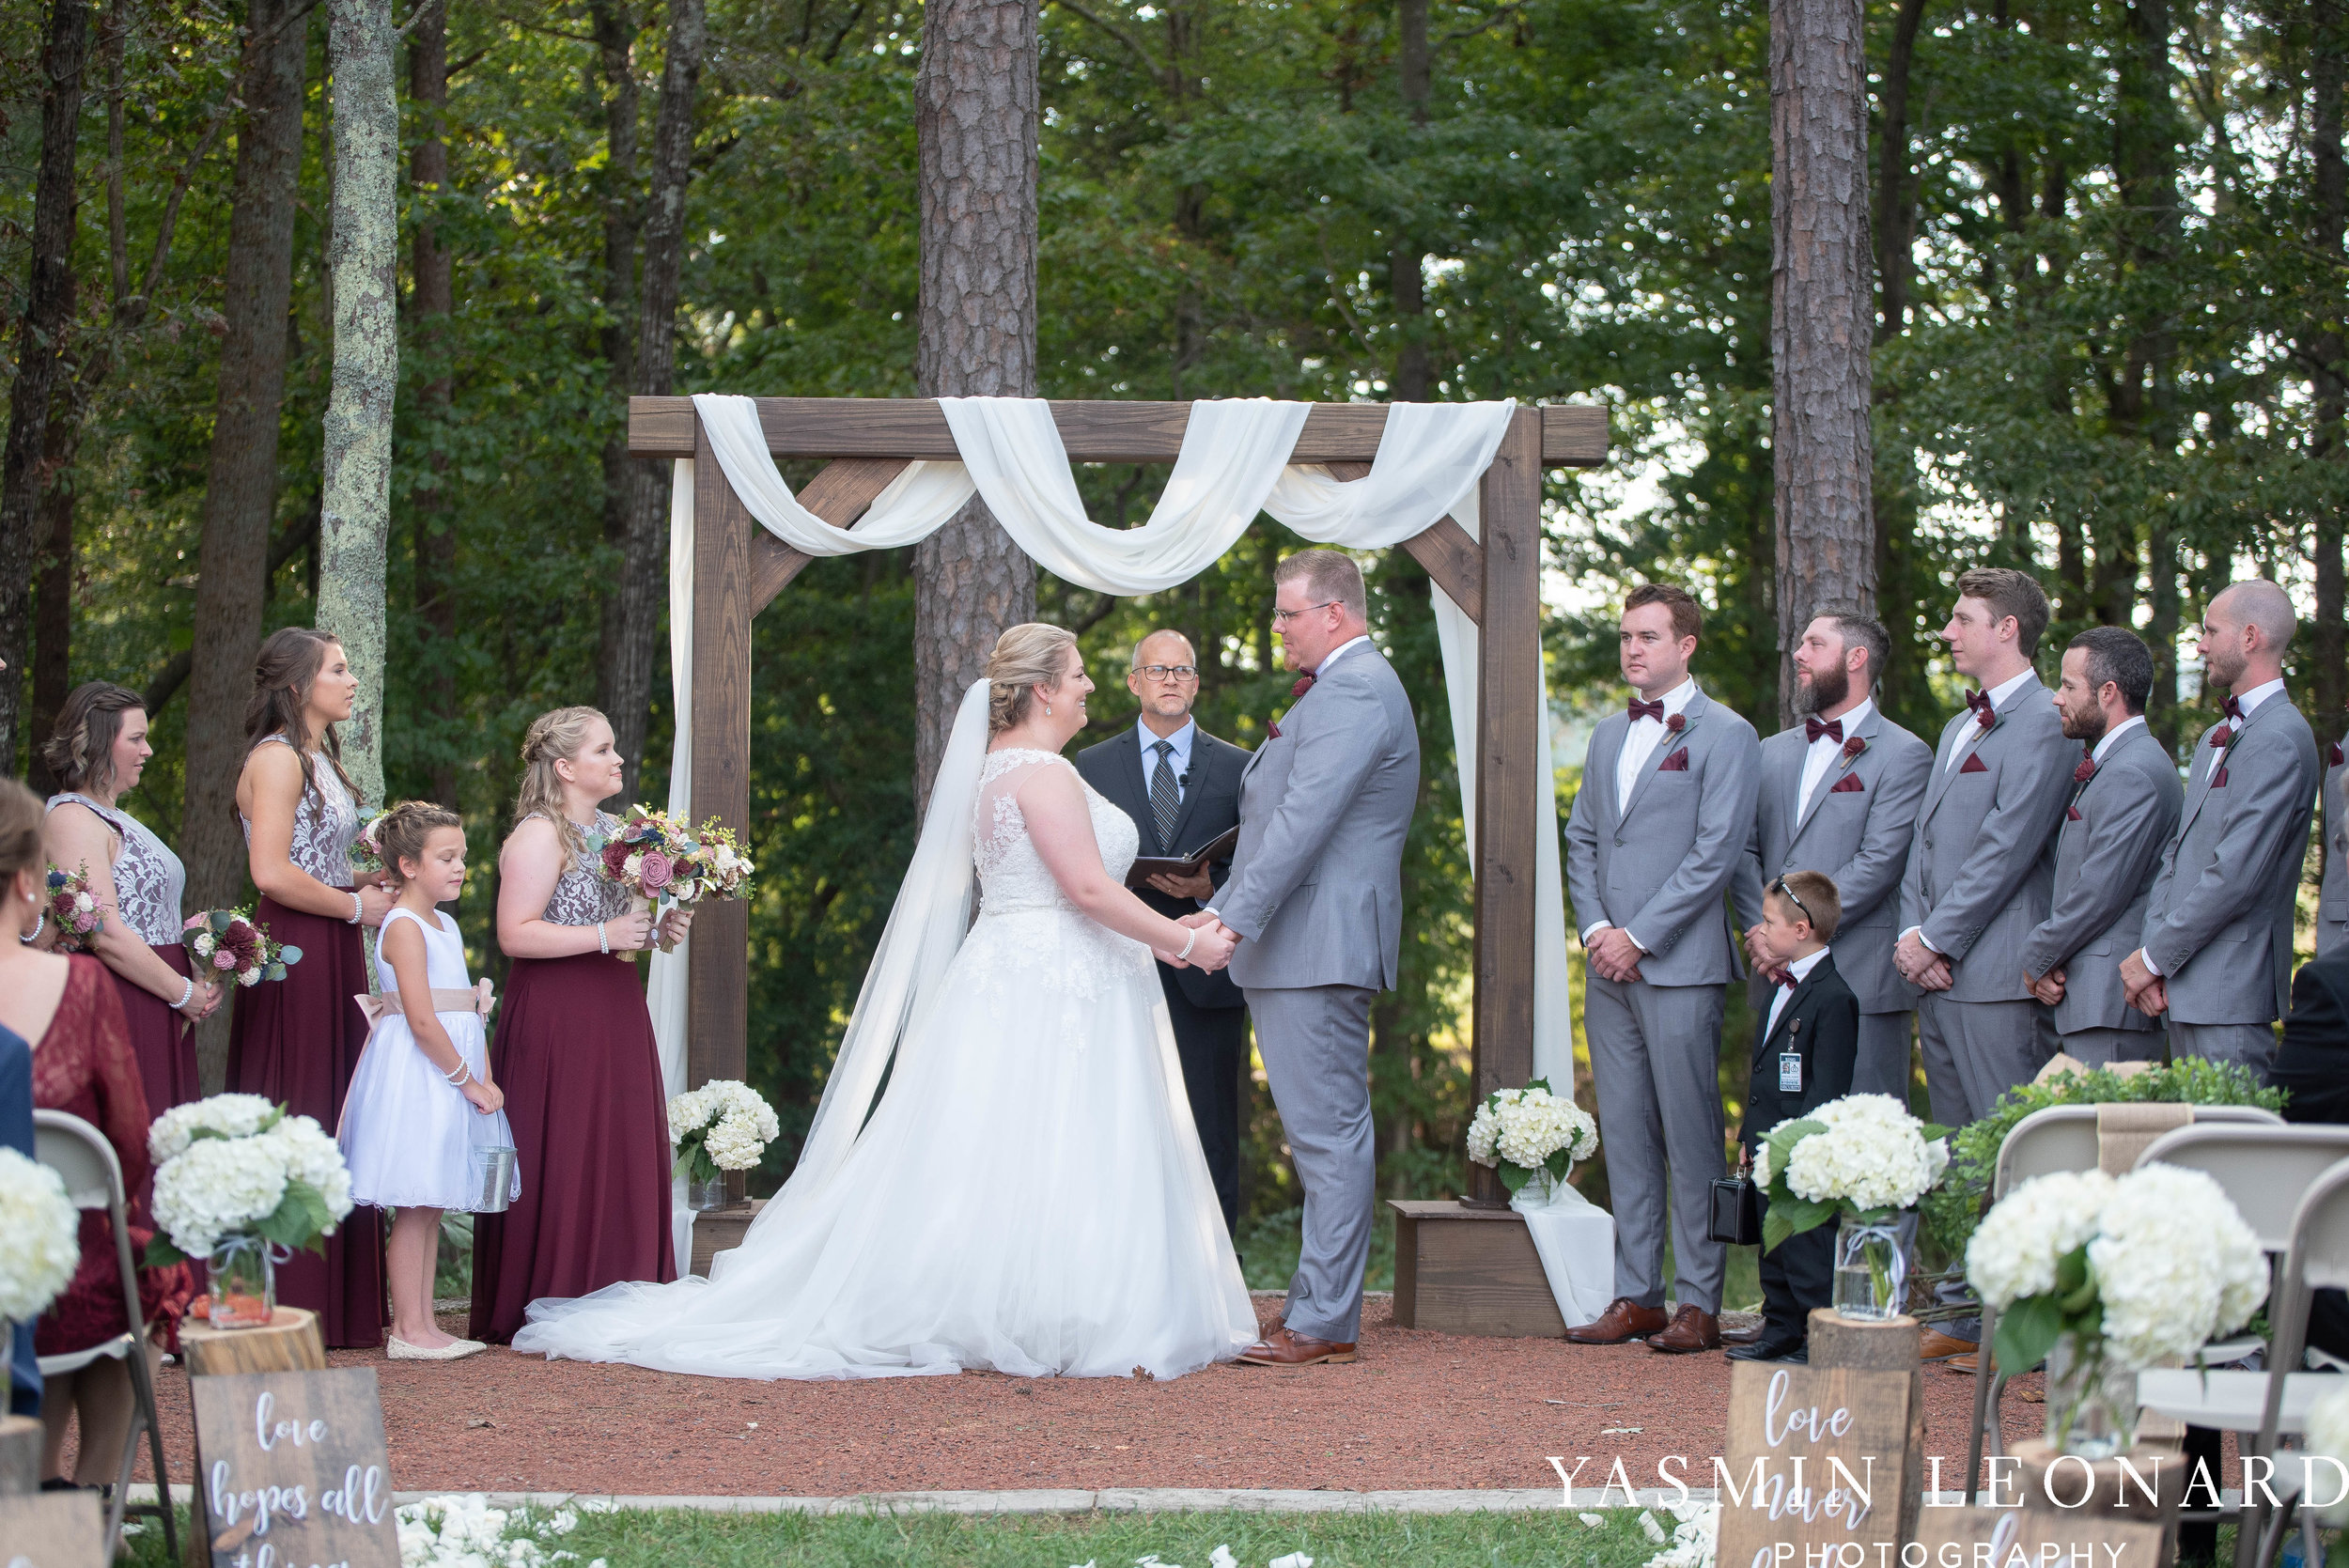 Danner Farms - NC Wedding Venues - NC Barns - Statesville NC - NC Wedding Photographer - High Point Wedding Photographer - Yasmin Leonard Photography-32.jpg